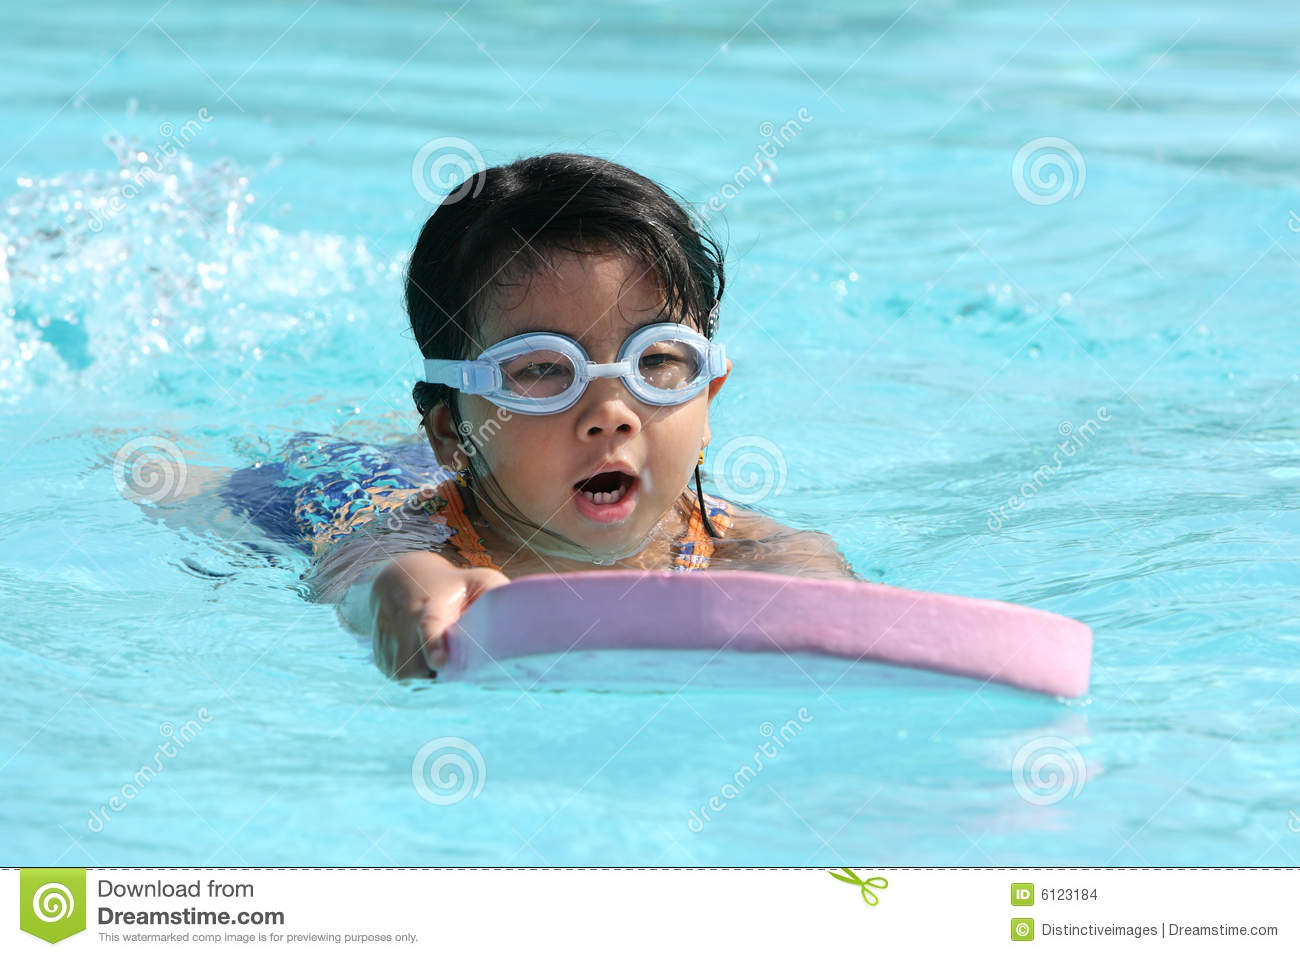 child-swimming-6123184.jpg